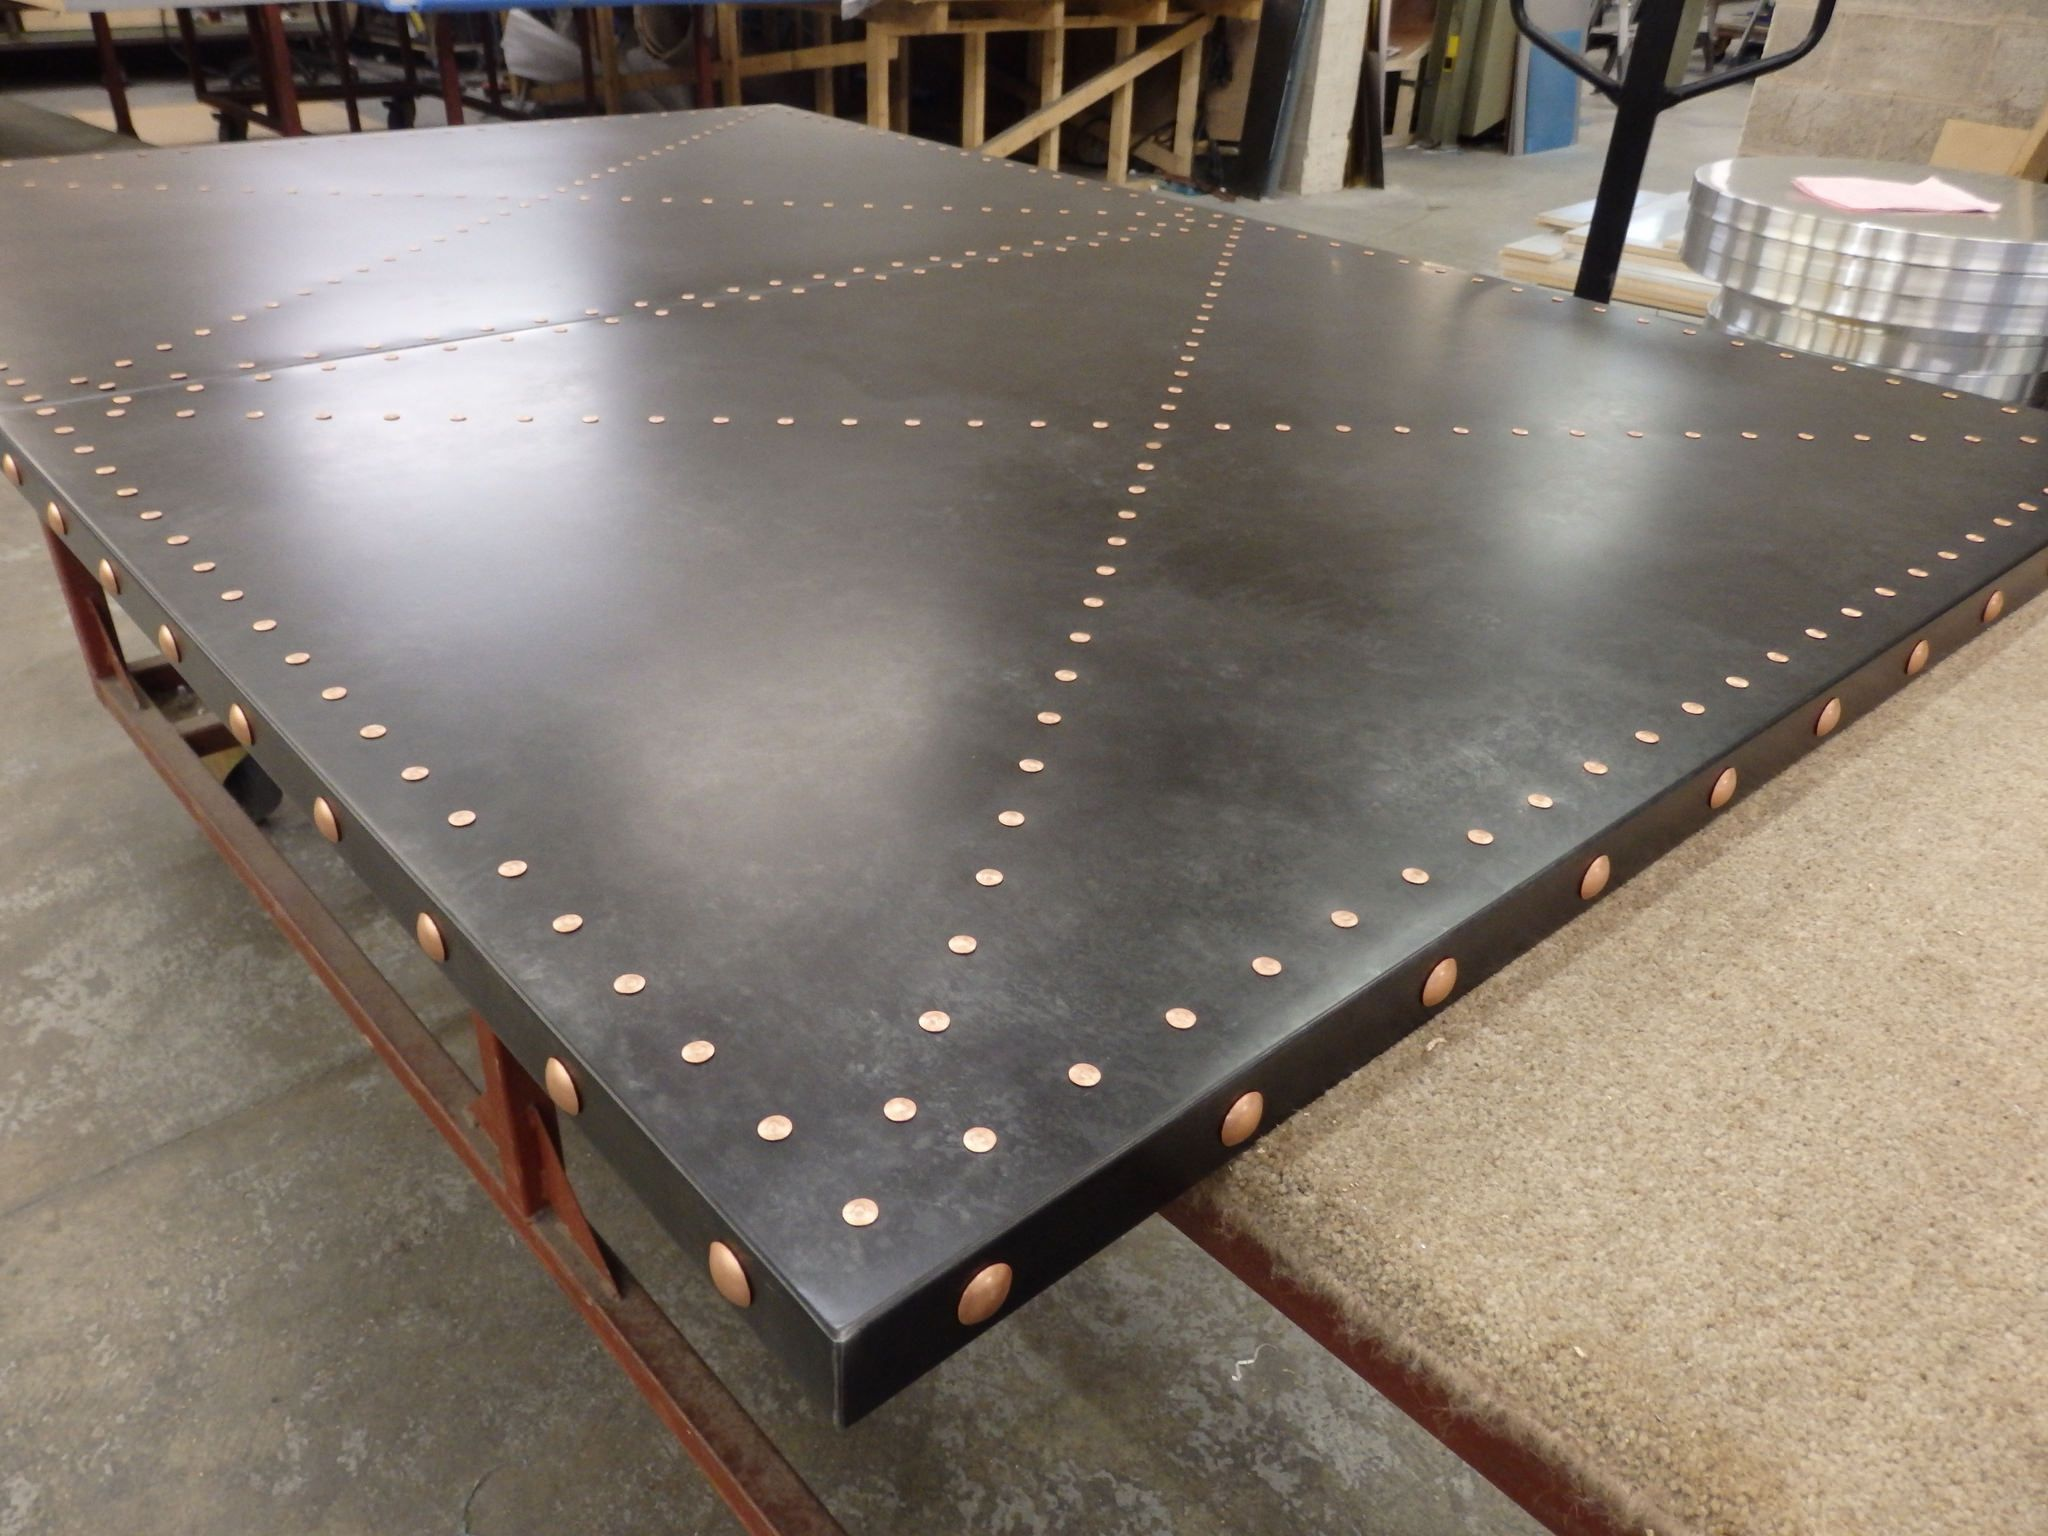 191 Zinc Table Top Dark Patina Copper Studs Zinc Table Zinc Table Top Zinc Dining Tables